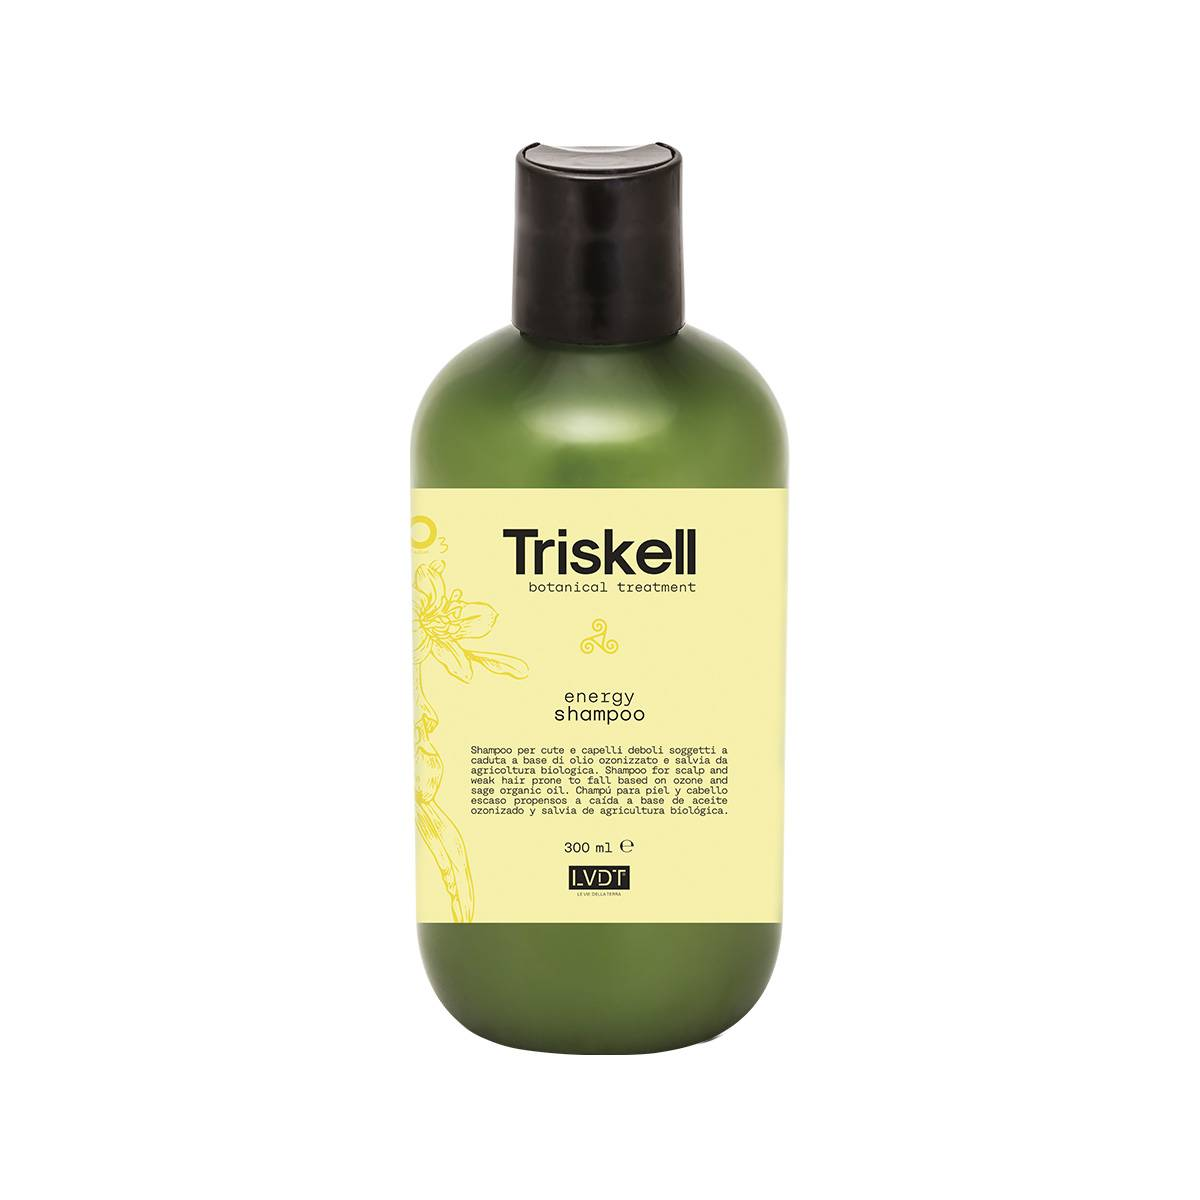 Energy Shampoo 300 Ml New Triskell Nuova Botanical Treatment